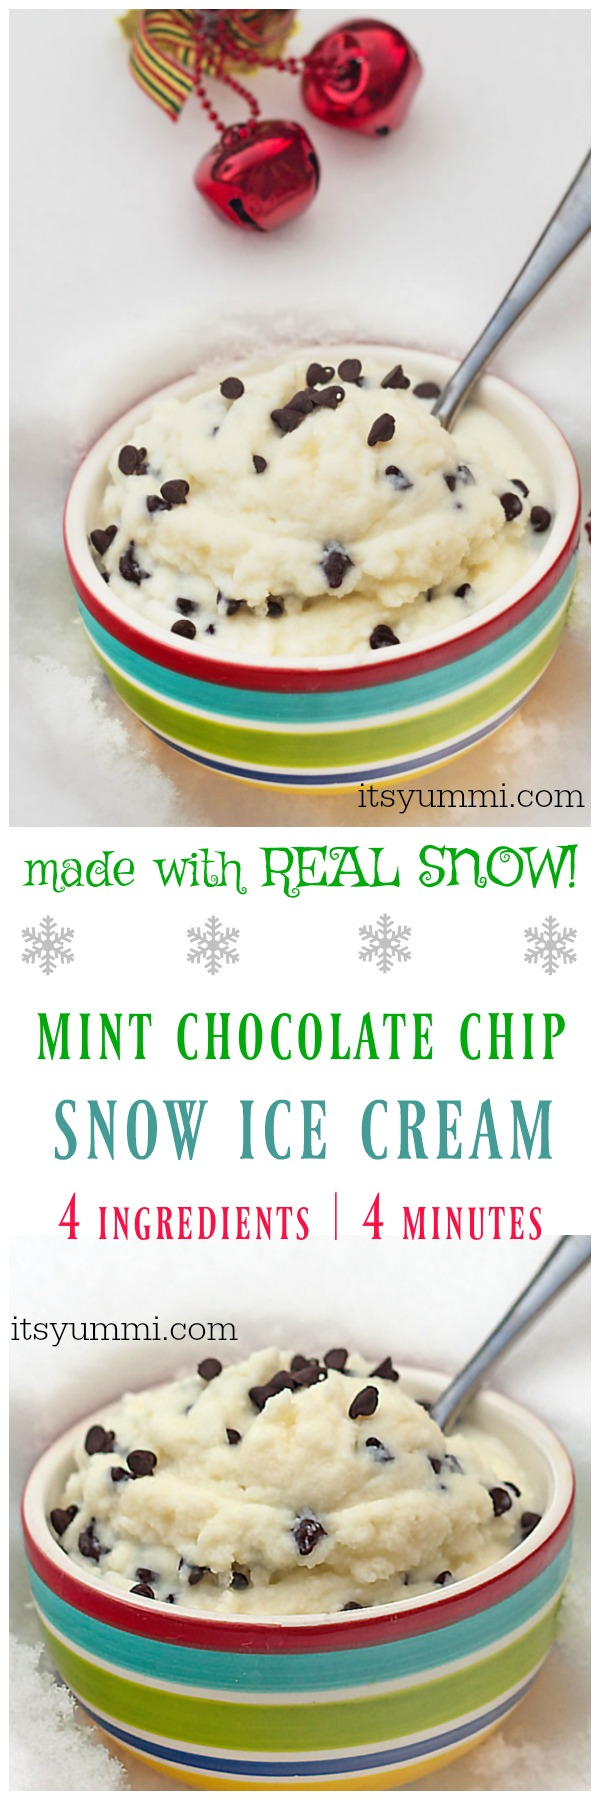 Snow cream (snow ice cream) is winter fun for kids! Mint chocolate chip snow cream is made with REAL SNOW, 4 ingredients, in only 4 minutes!